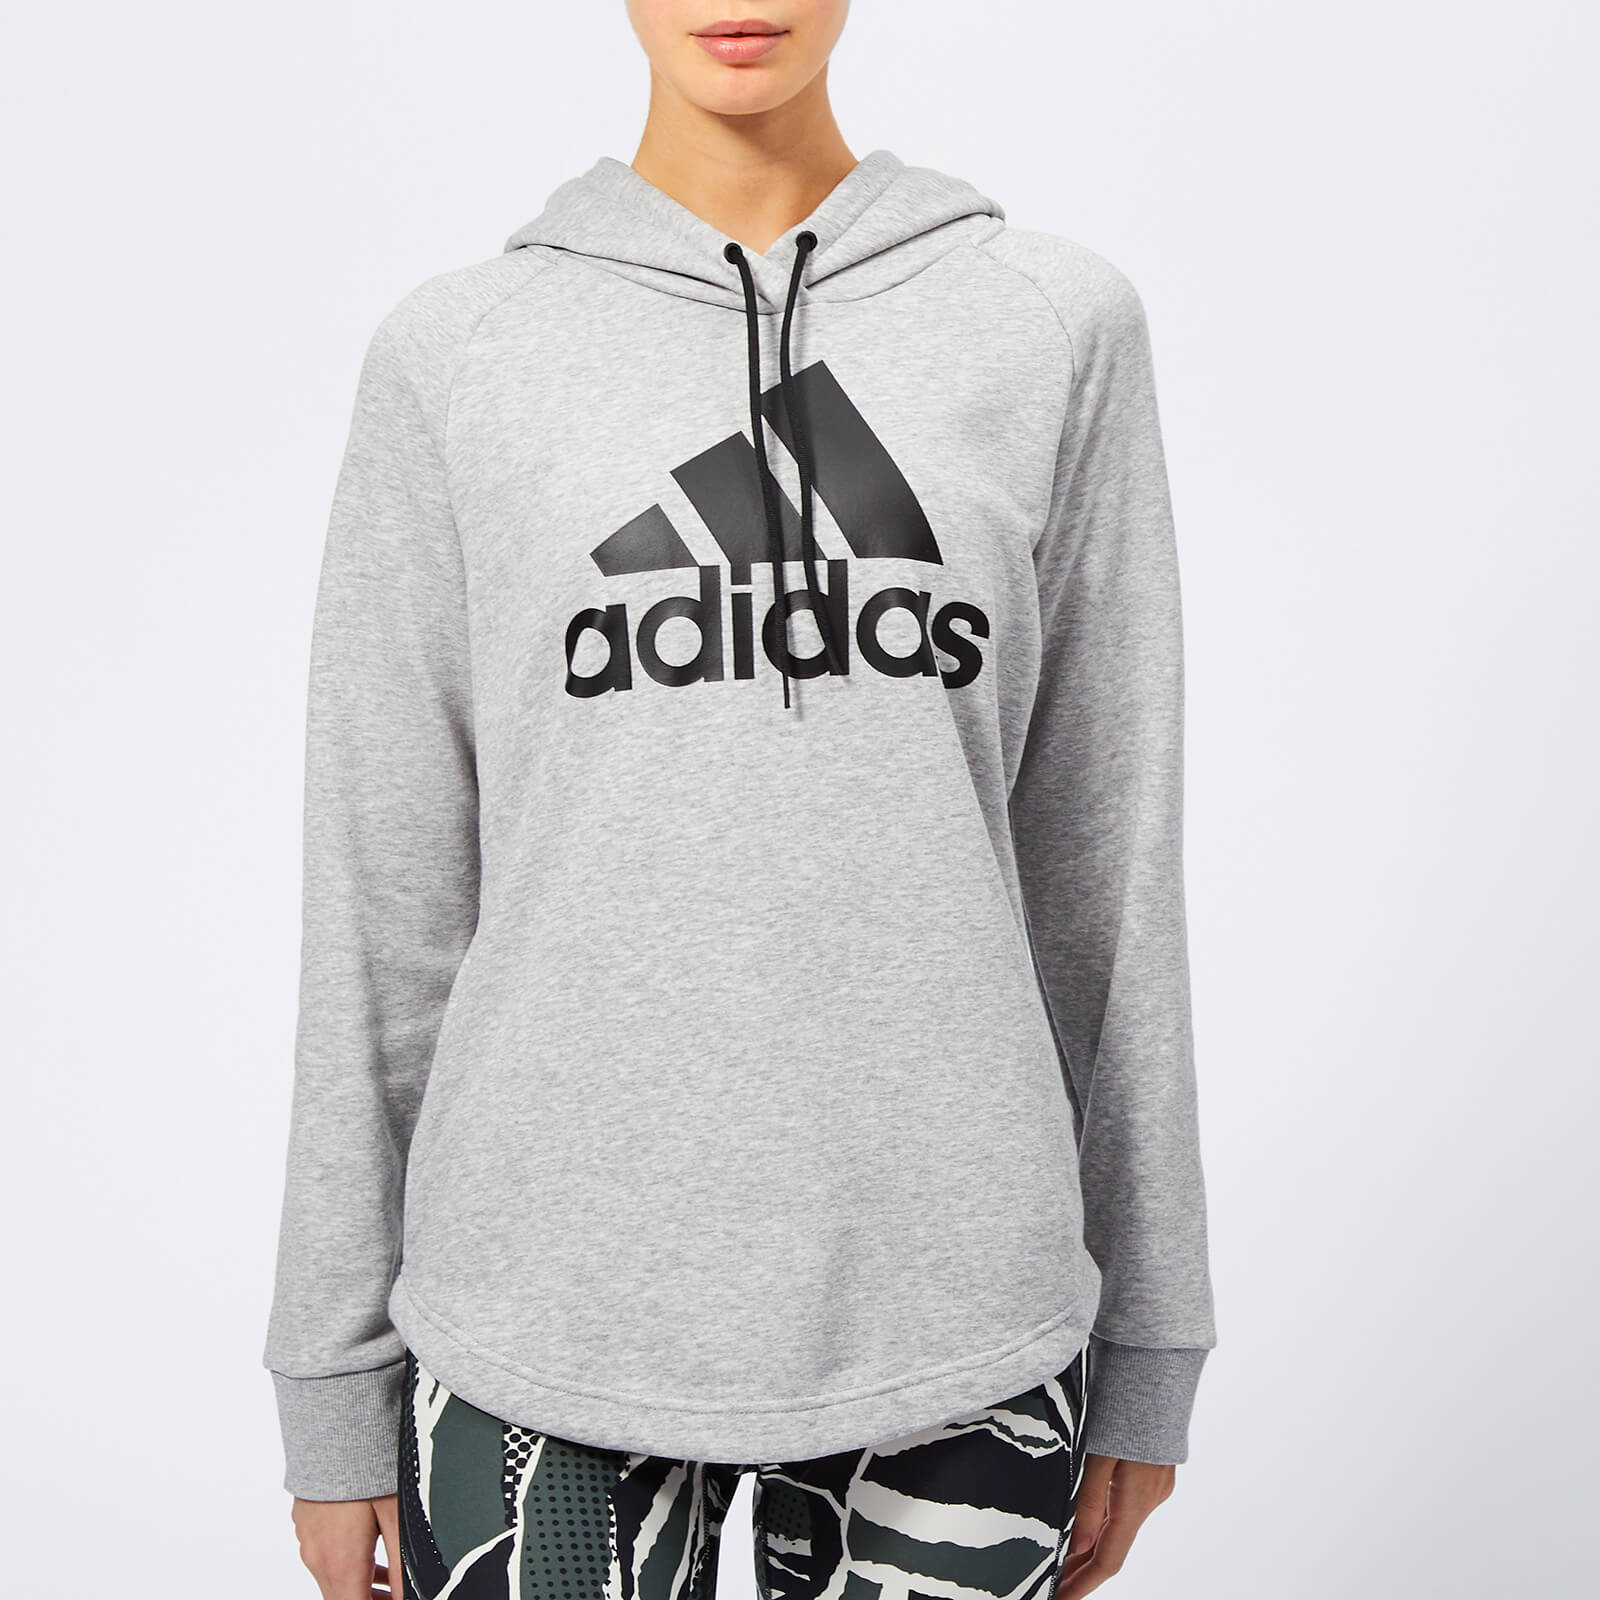 6f5484cac70 adidas Women's Must Haves Badge of Sport Hoodie - Grey Heather Sports &  Leisure | TheHut.com